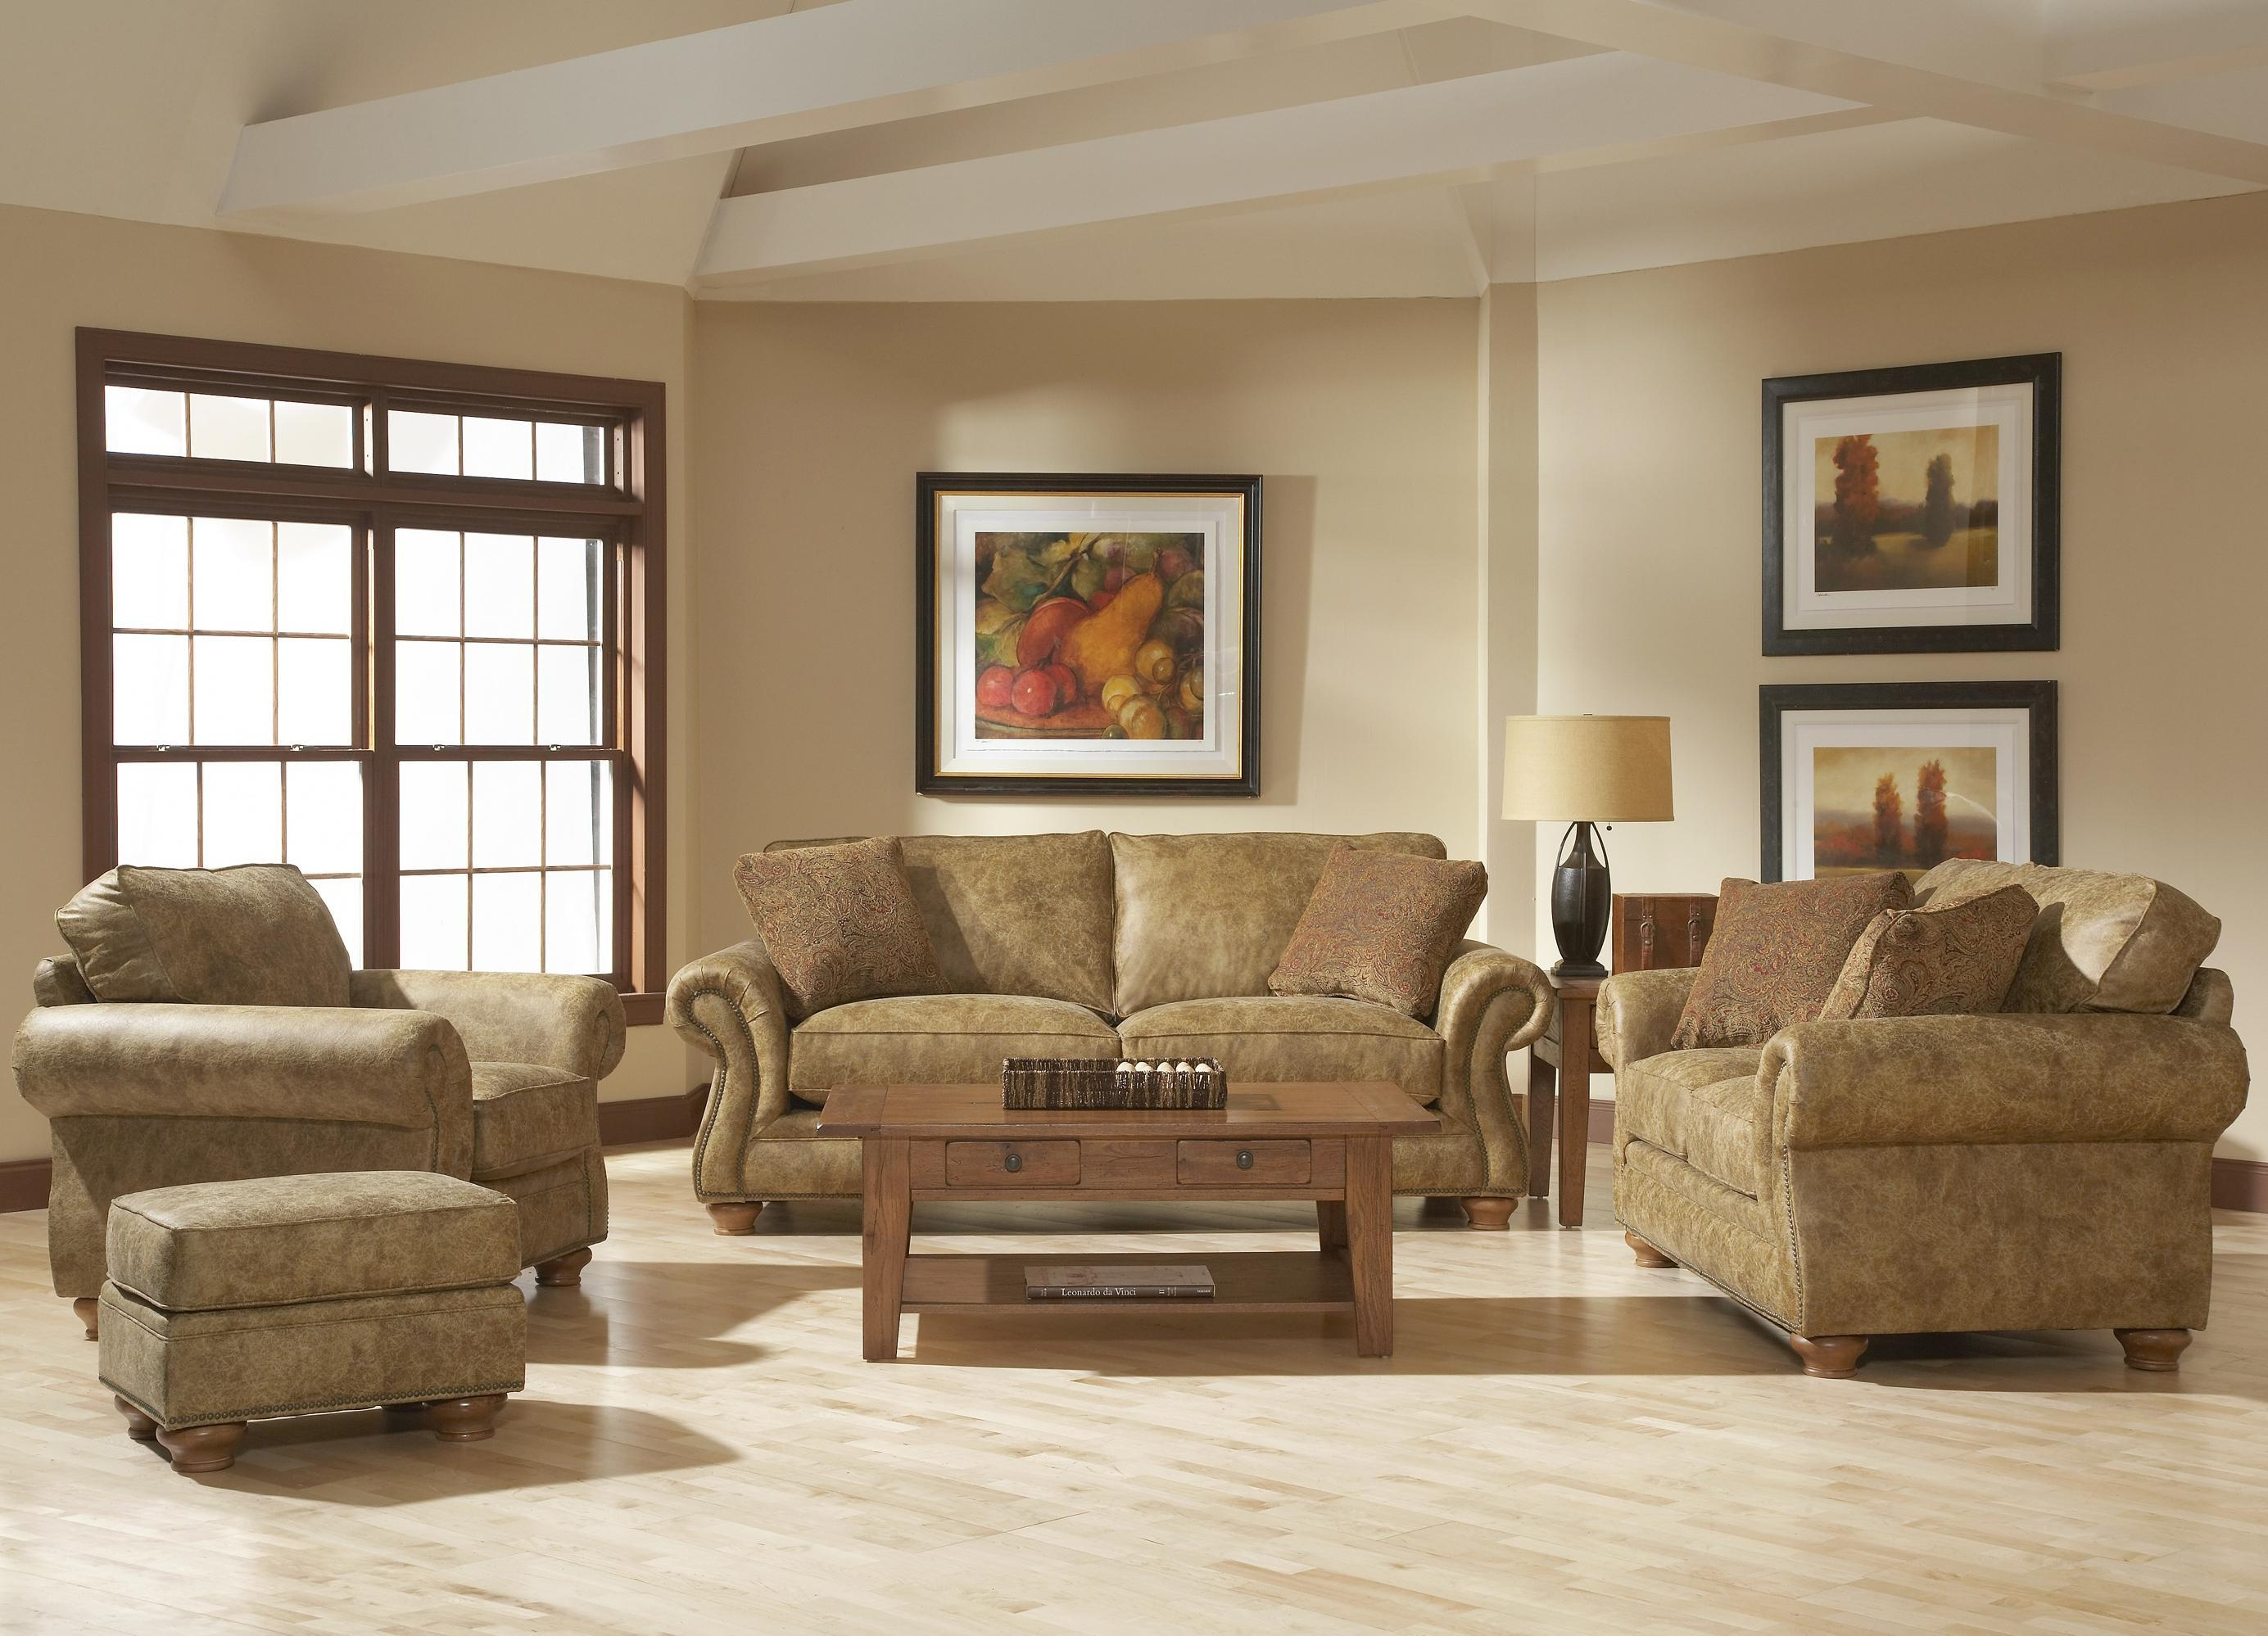 Broyhill Furniture Laramie 3 Piece Wedge Sectional Sofa – Wayside With Broyhill Sectional Sofa (Image 6 of 15)